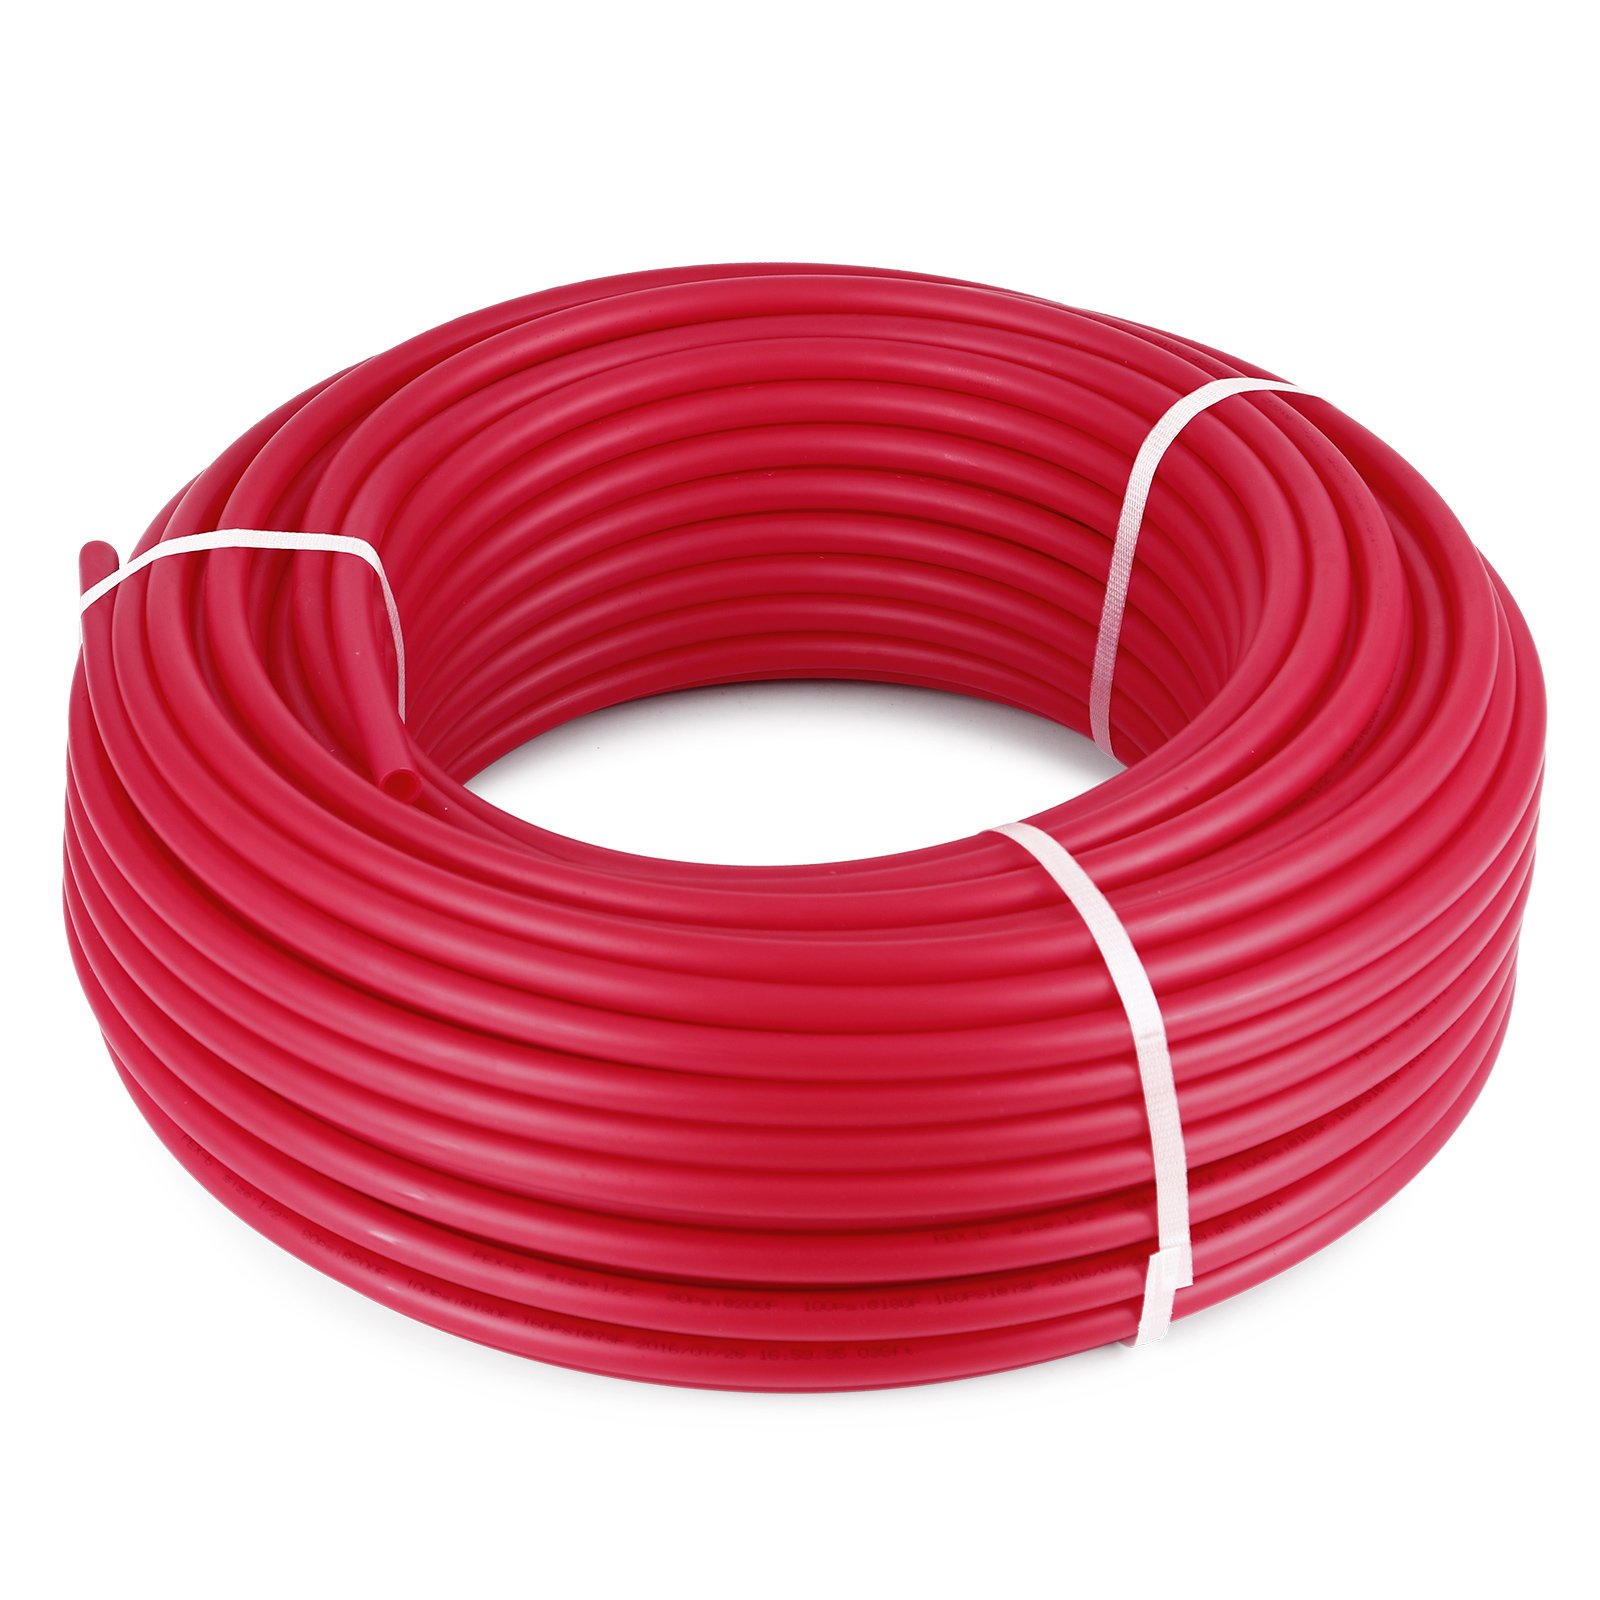 OrangeA PEX Tubing 1/2 Inch Potable Water Pipe 2 Rolls X 300Ft Tube Coil PEX-B Non Oxygen Barrier Piping for Hot Cold Plumbing and Radiant Floor Heating Applications by OrangeA (Image #4)